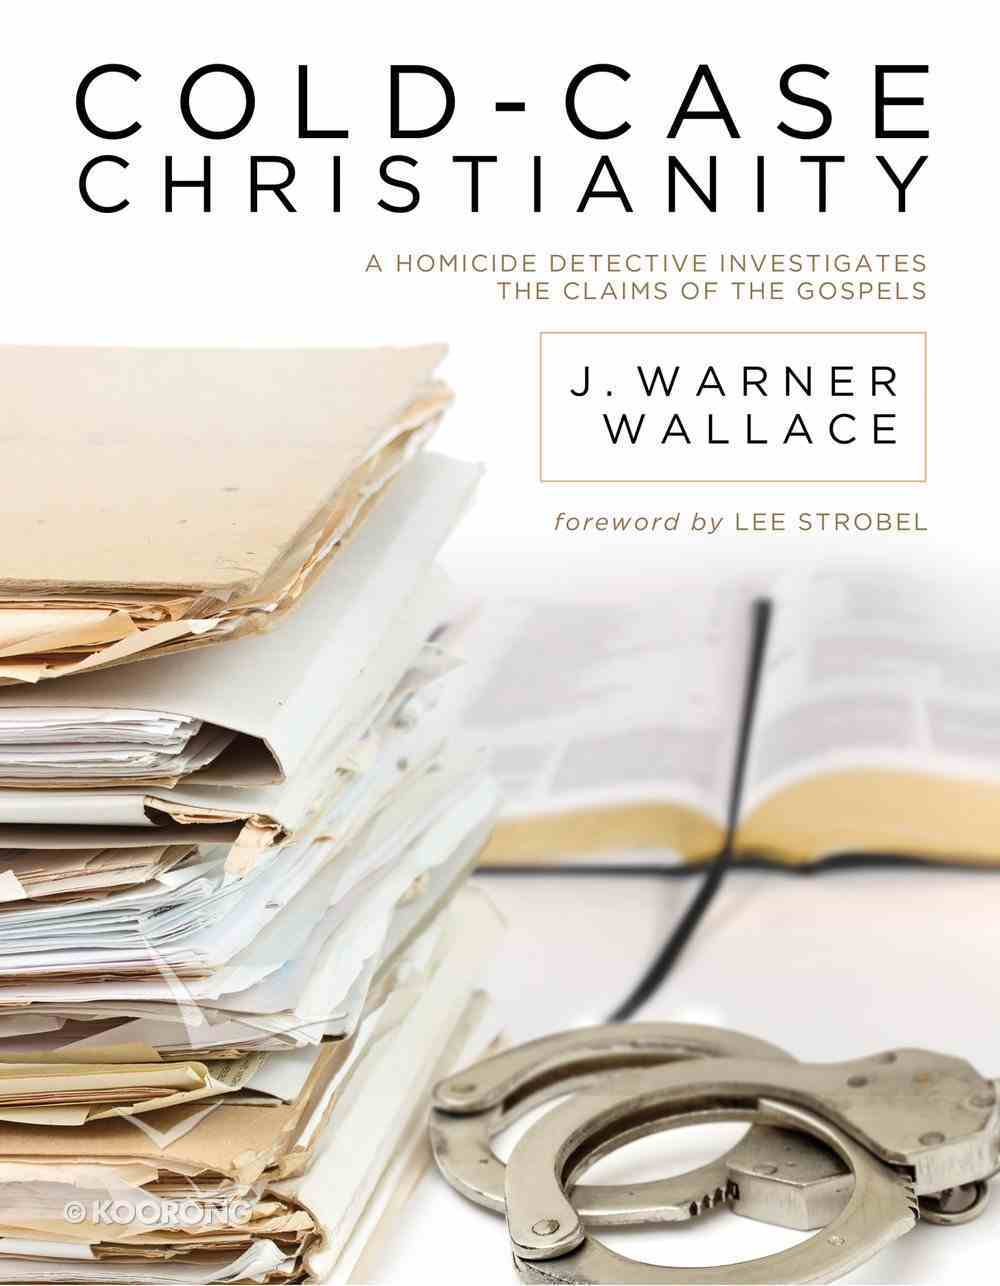 Cold-Case Christianity: A Homicide Detective Investigates the Claims of the Gospels eBook